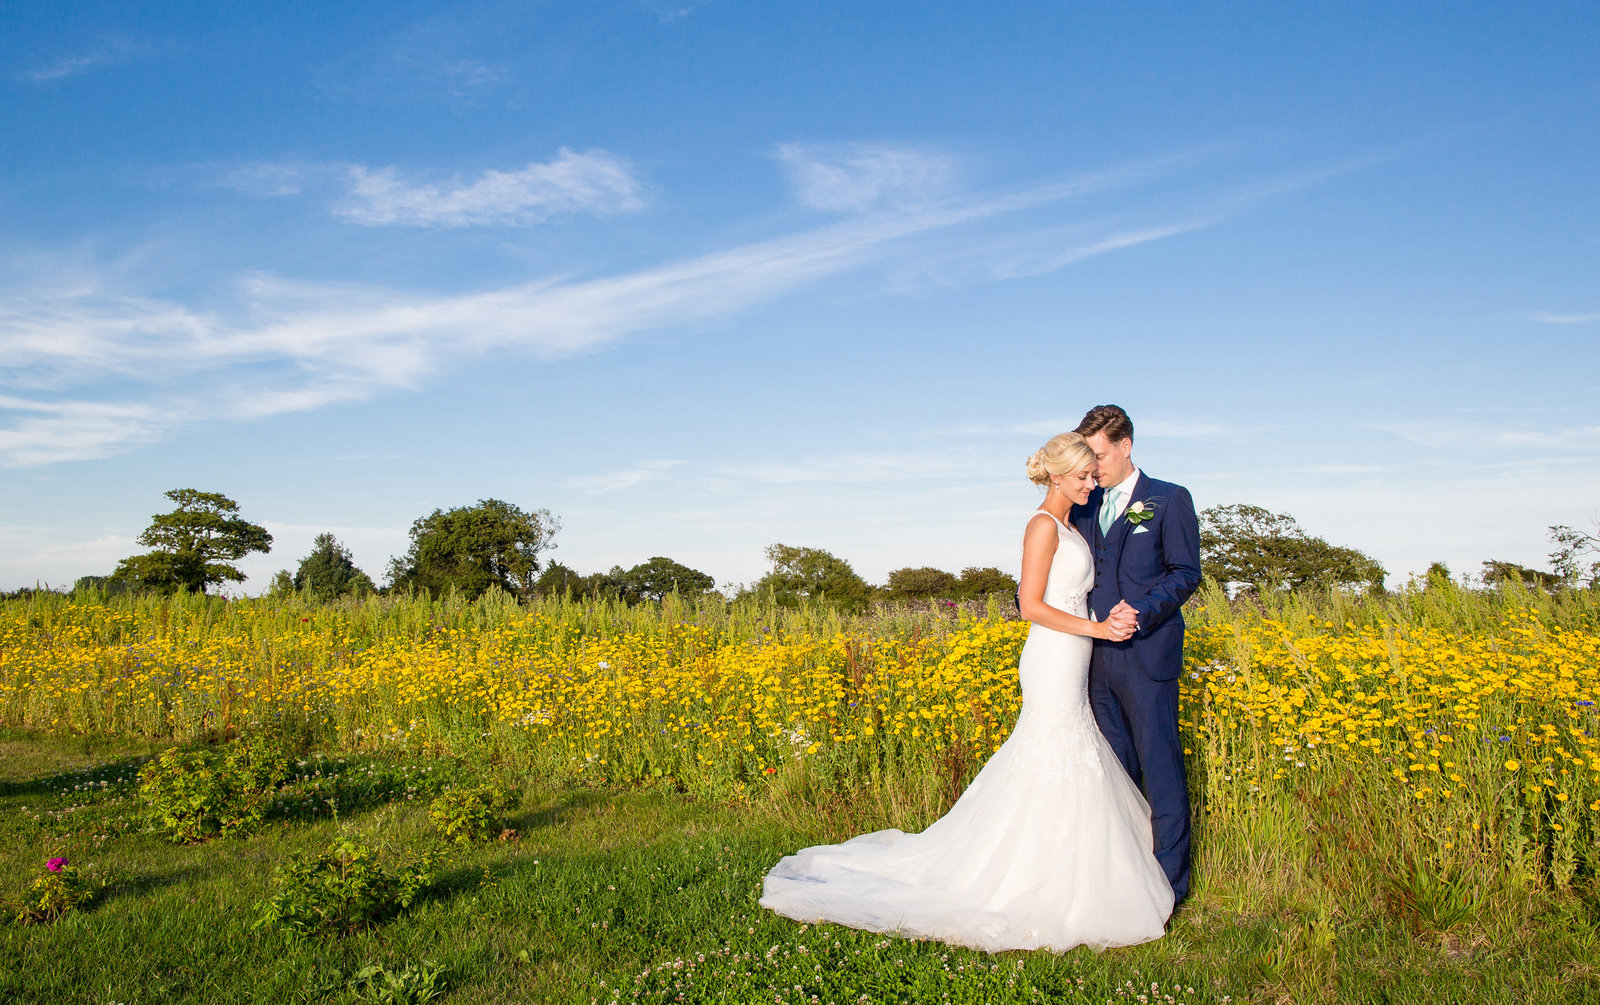 adorlee-066-wedding-photographer-chichester-west-sussex